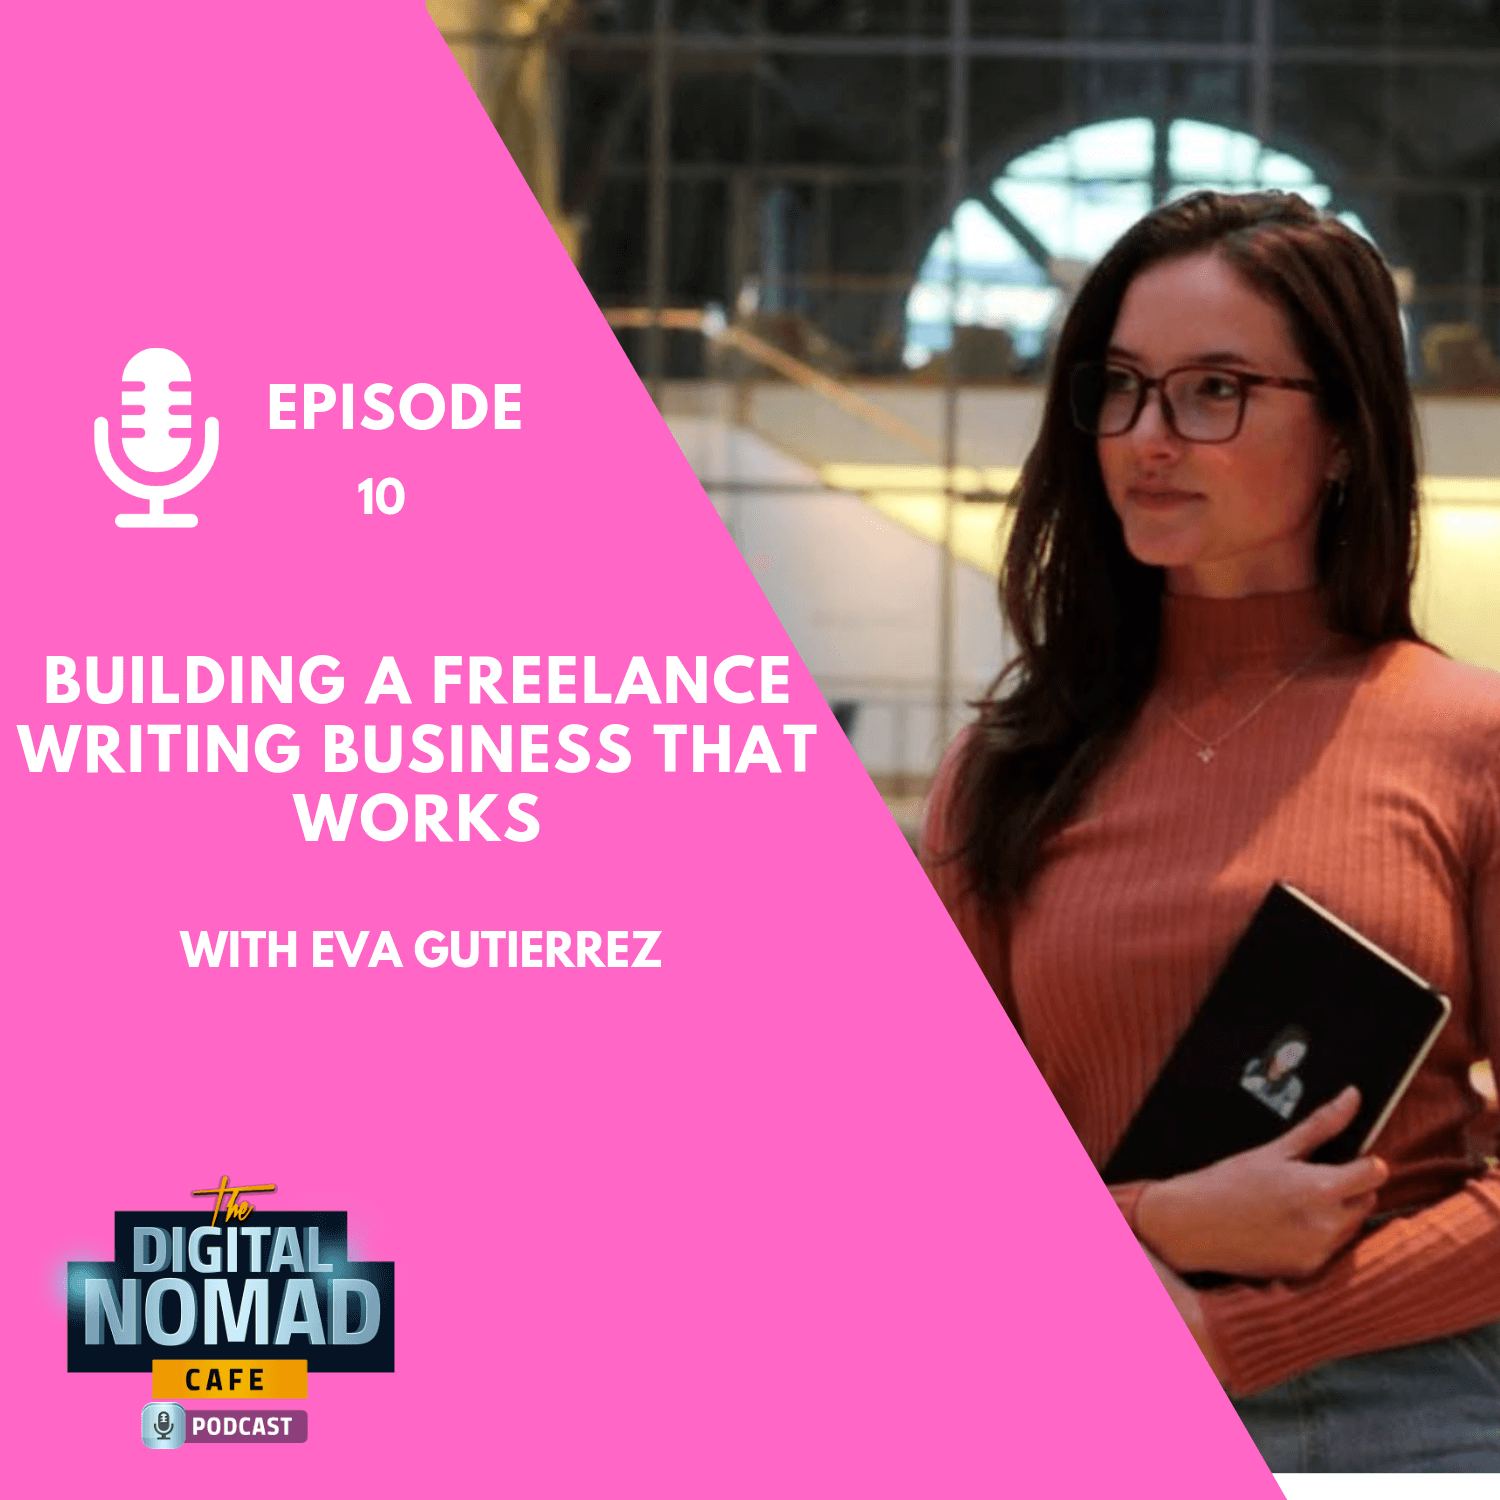 Building A Freelance Writing Business that works with Eva Gutierrez